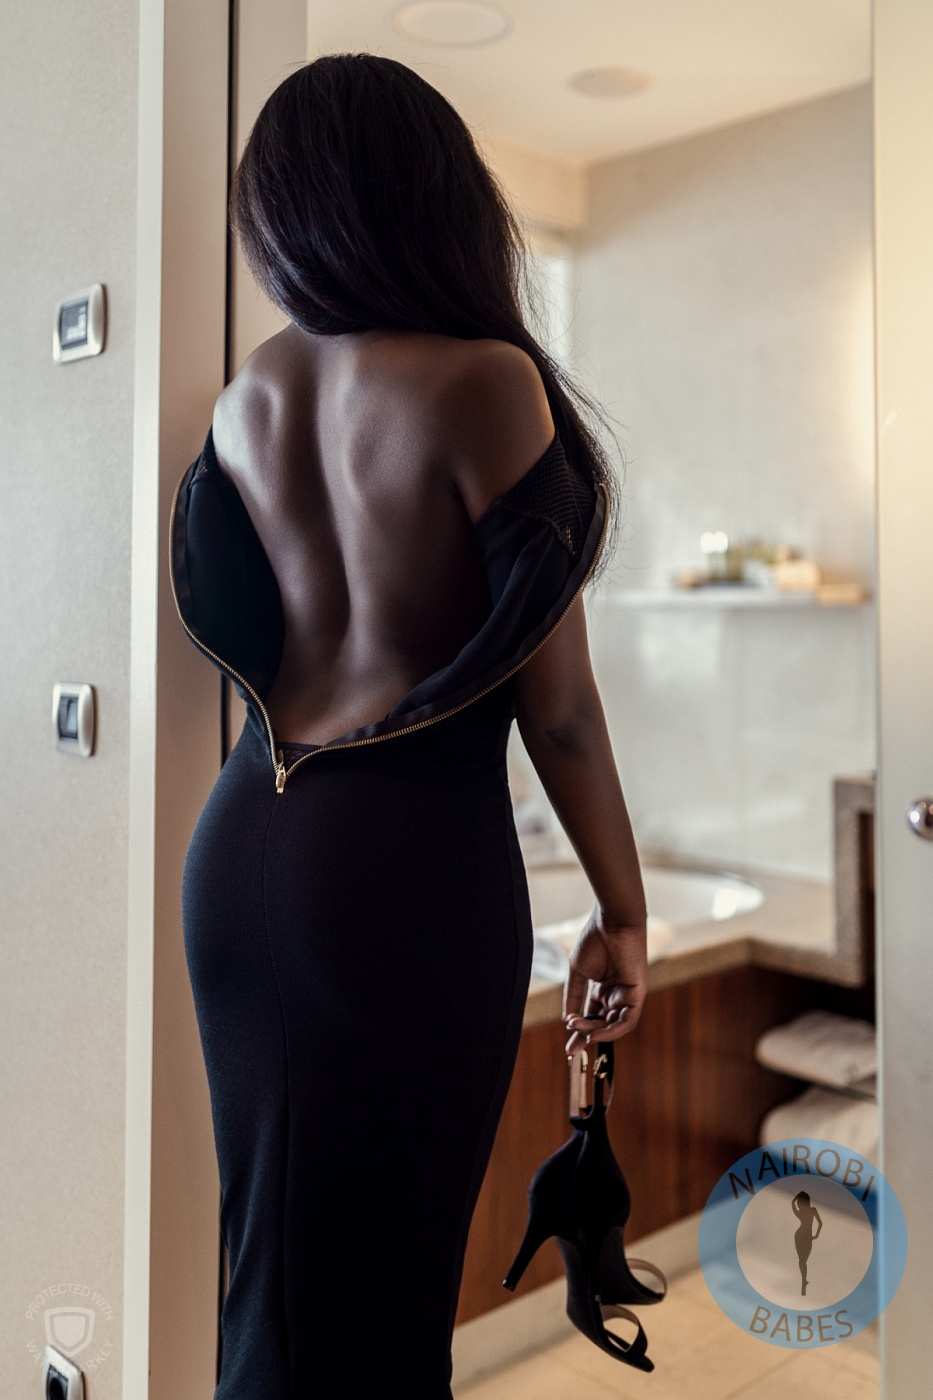 Spend some time with Nairobibabes Escort Elsie in CBD; you won't regret it